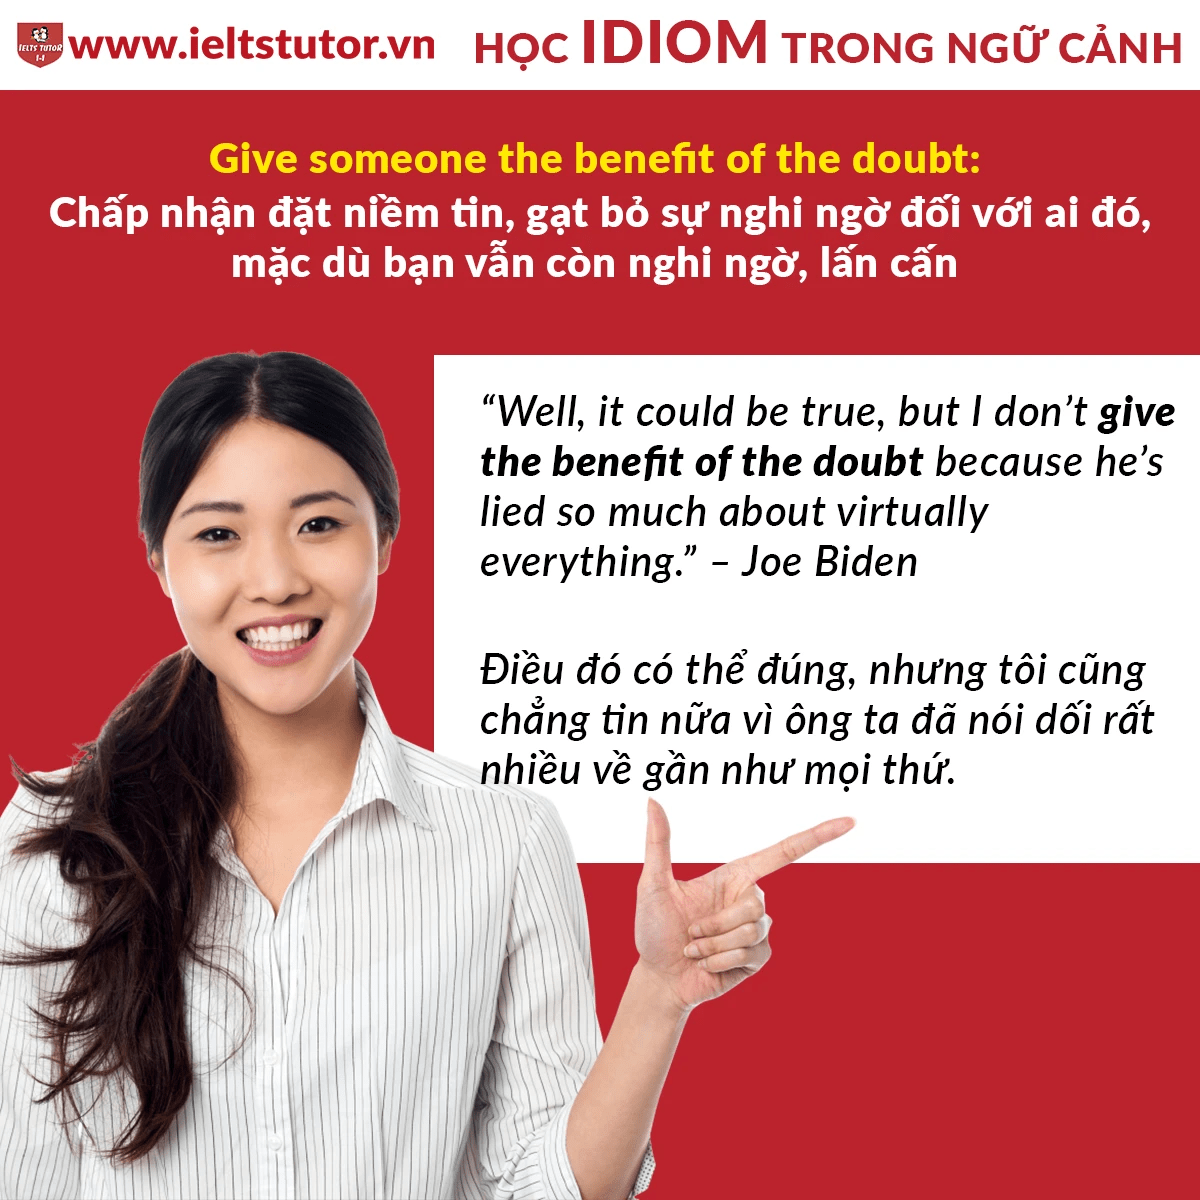 [HỌC IDIOM TRONG NGỮ CẢNH�] Give someone the benefit of the doubt